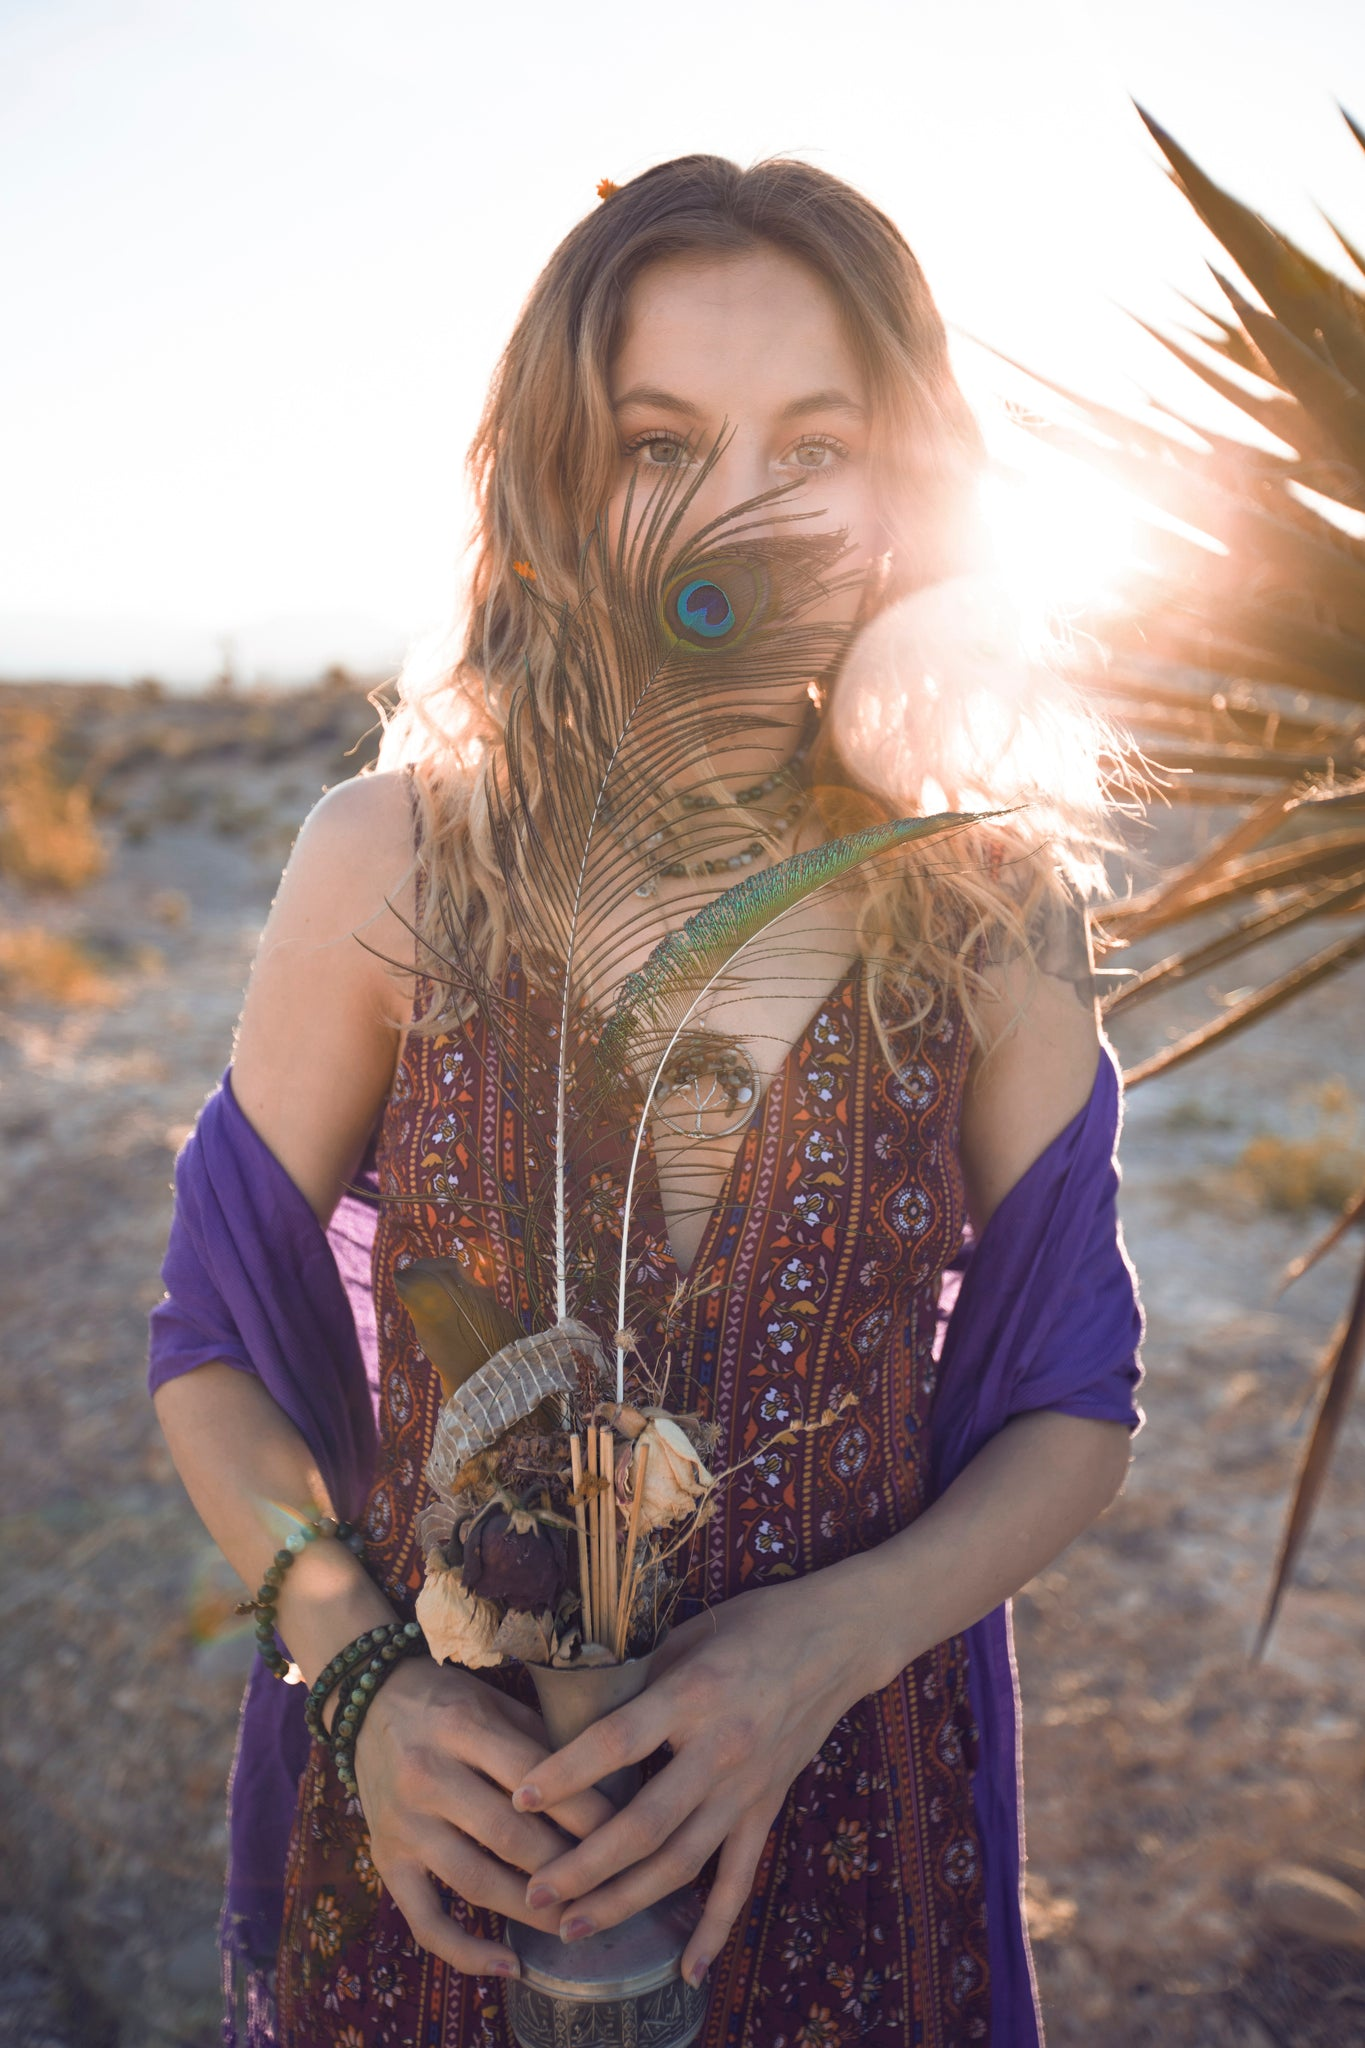 Becoming a Bohemian Babe: Five Way You Can live the Bohemian Lifestyle Everyday